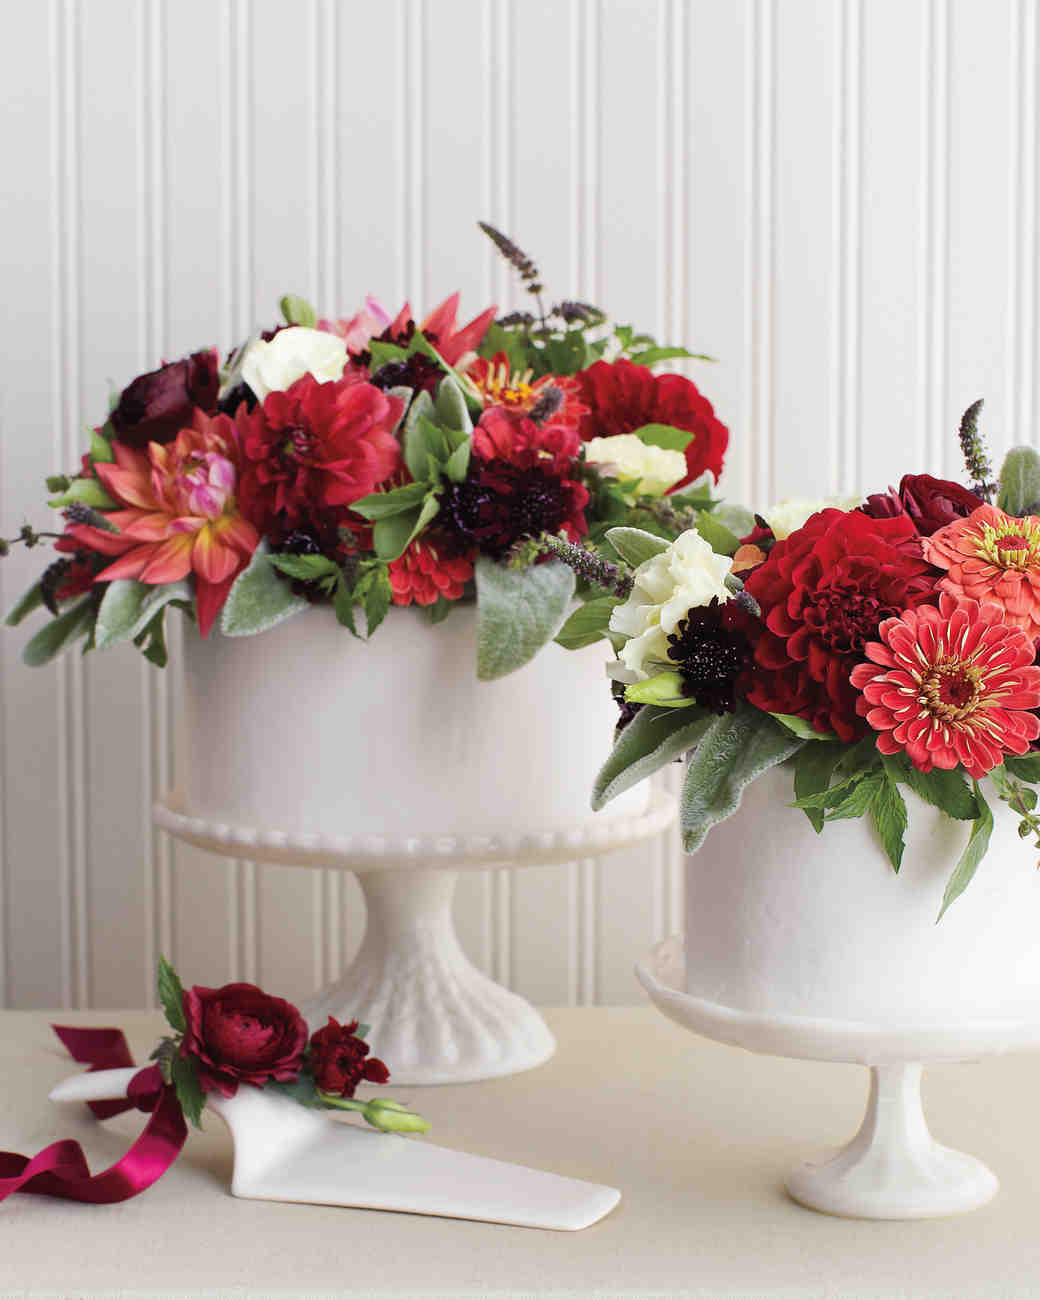 White Single-Tiered Wedding Cake with Red Floral Bouquet Topper